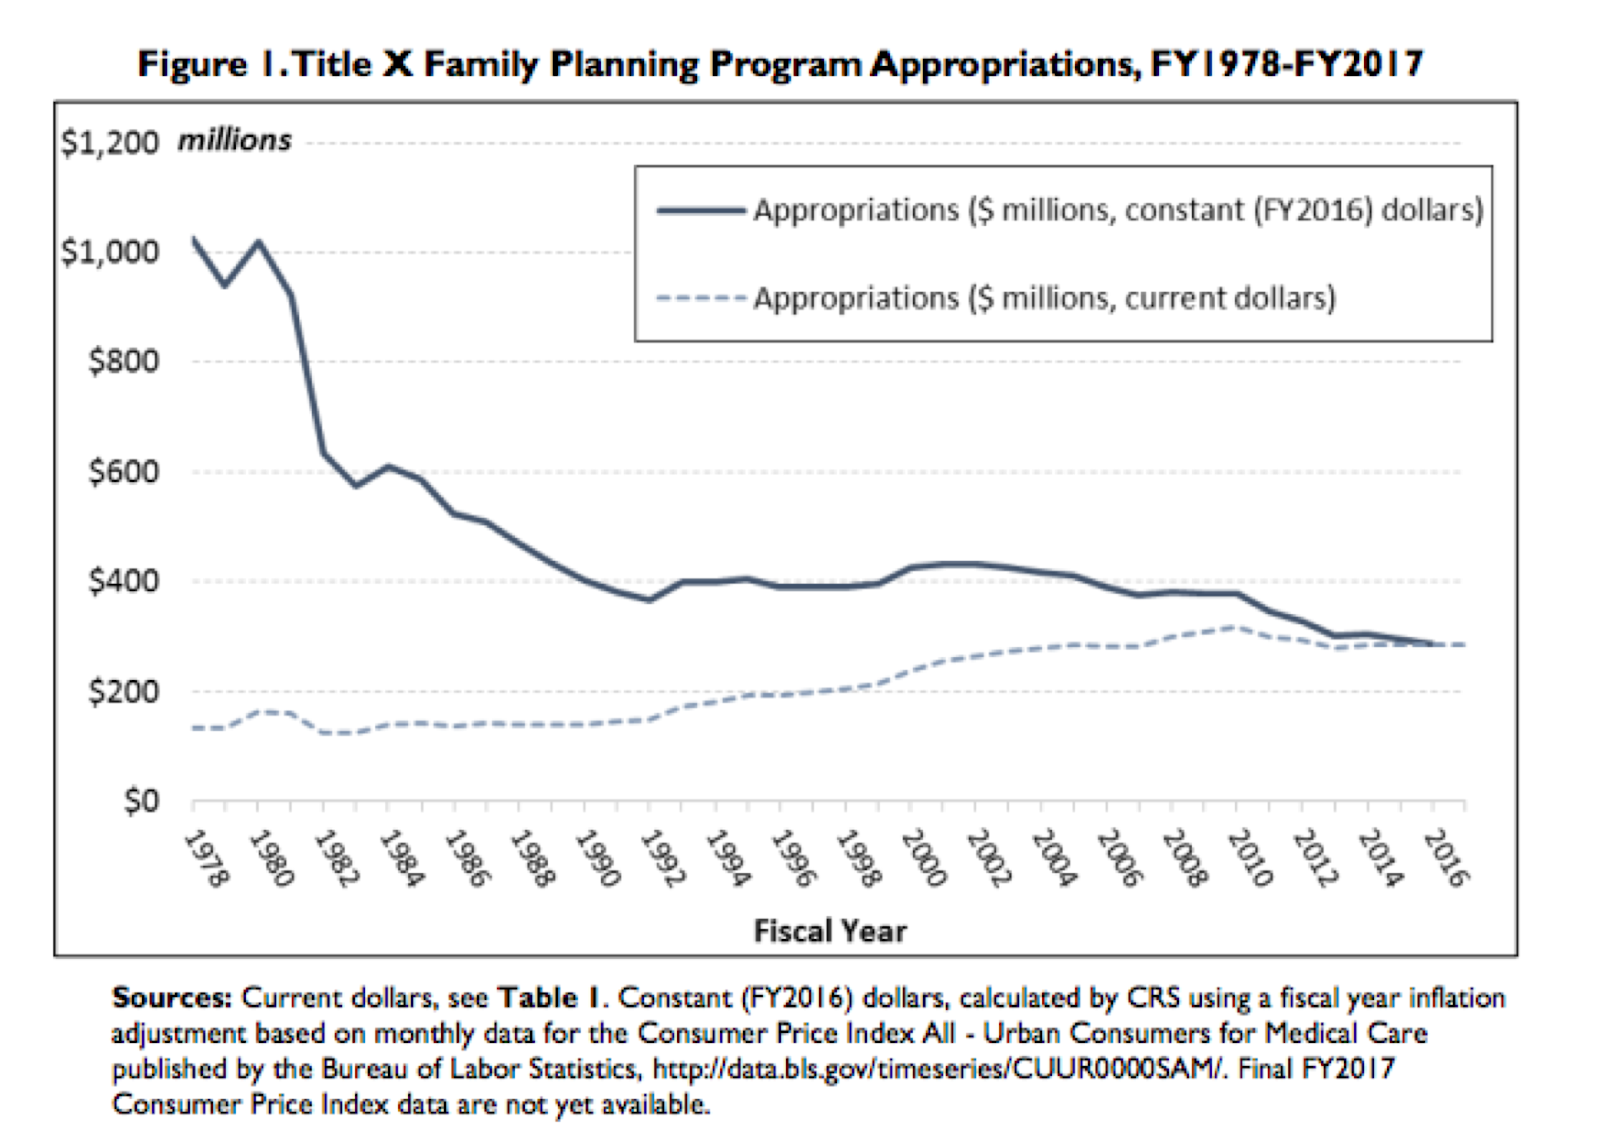 Title X Family Planning Program Appropriations